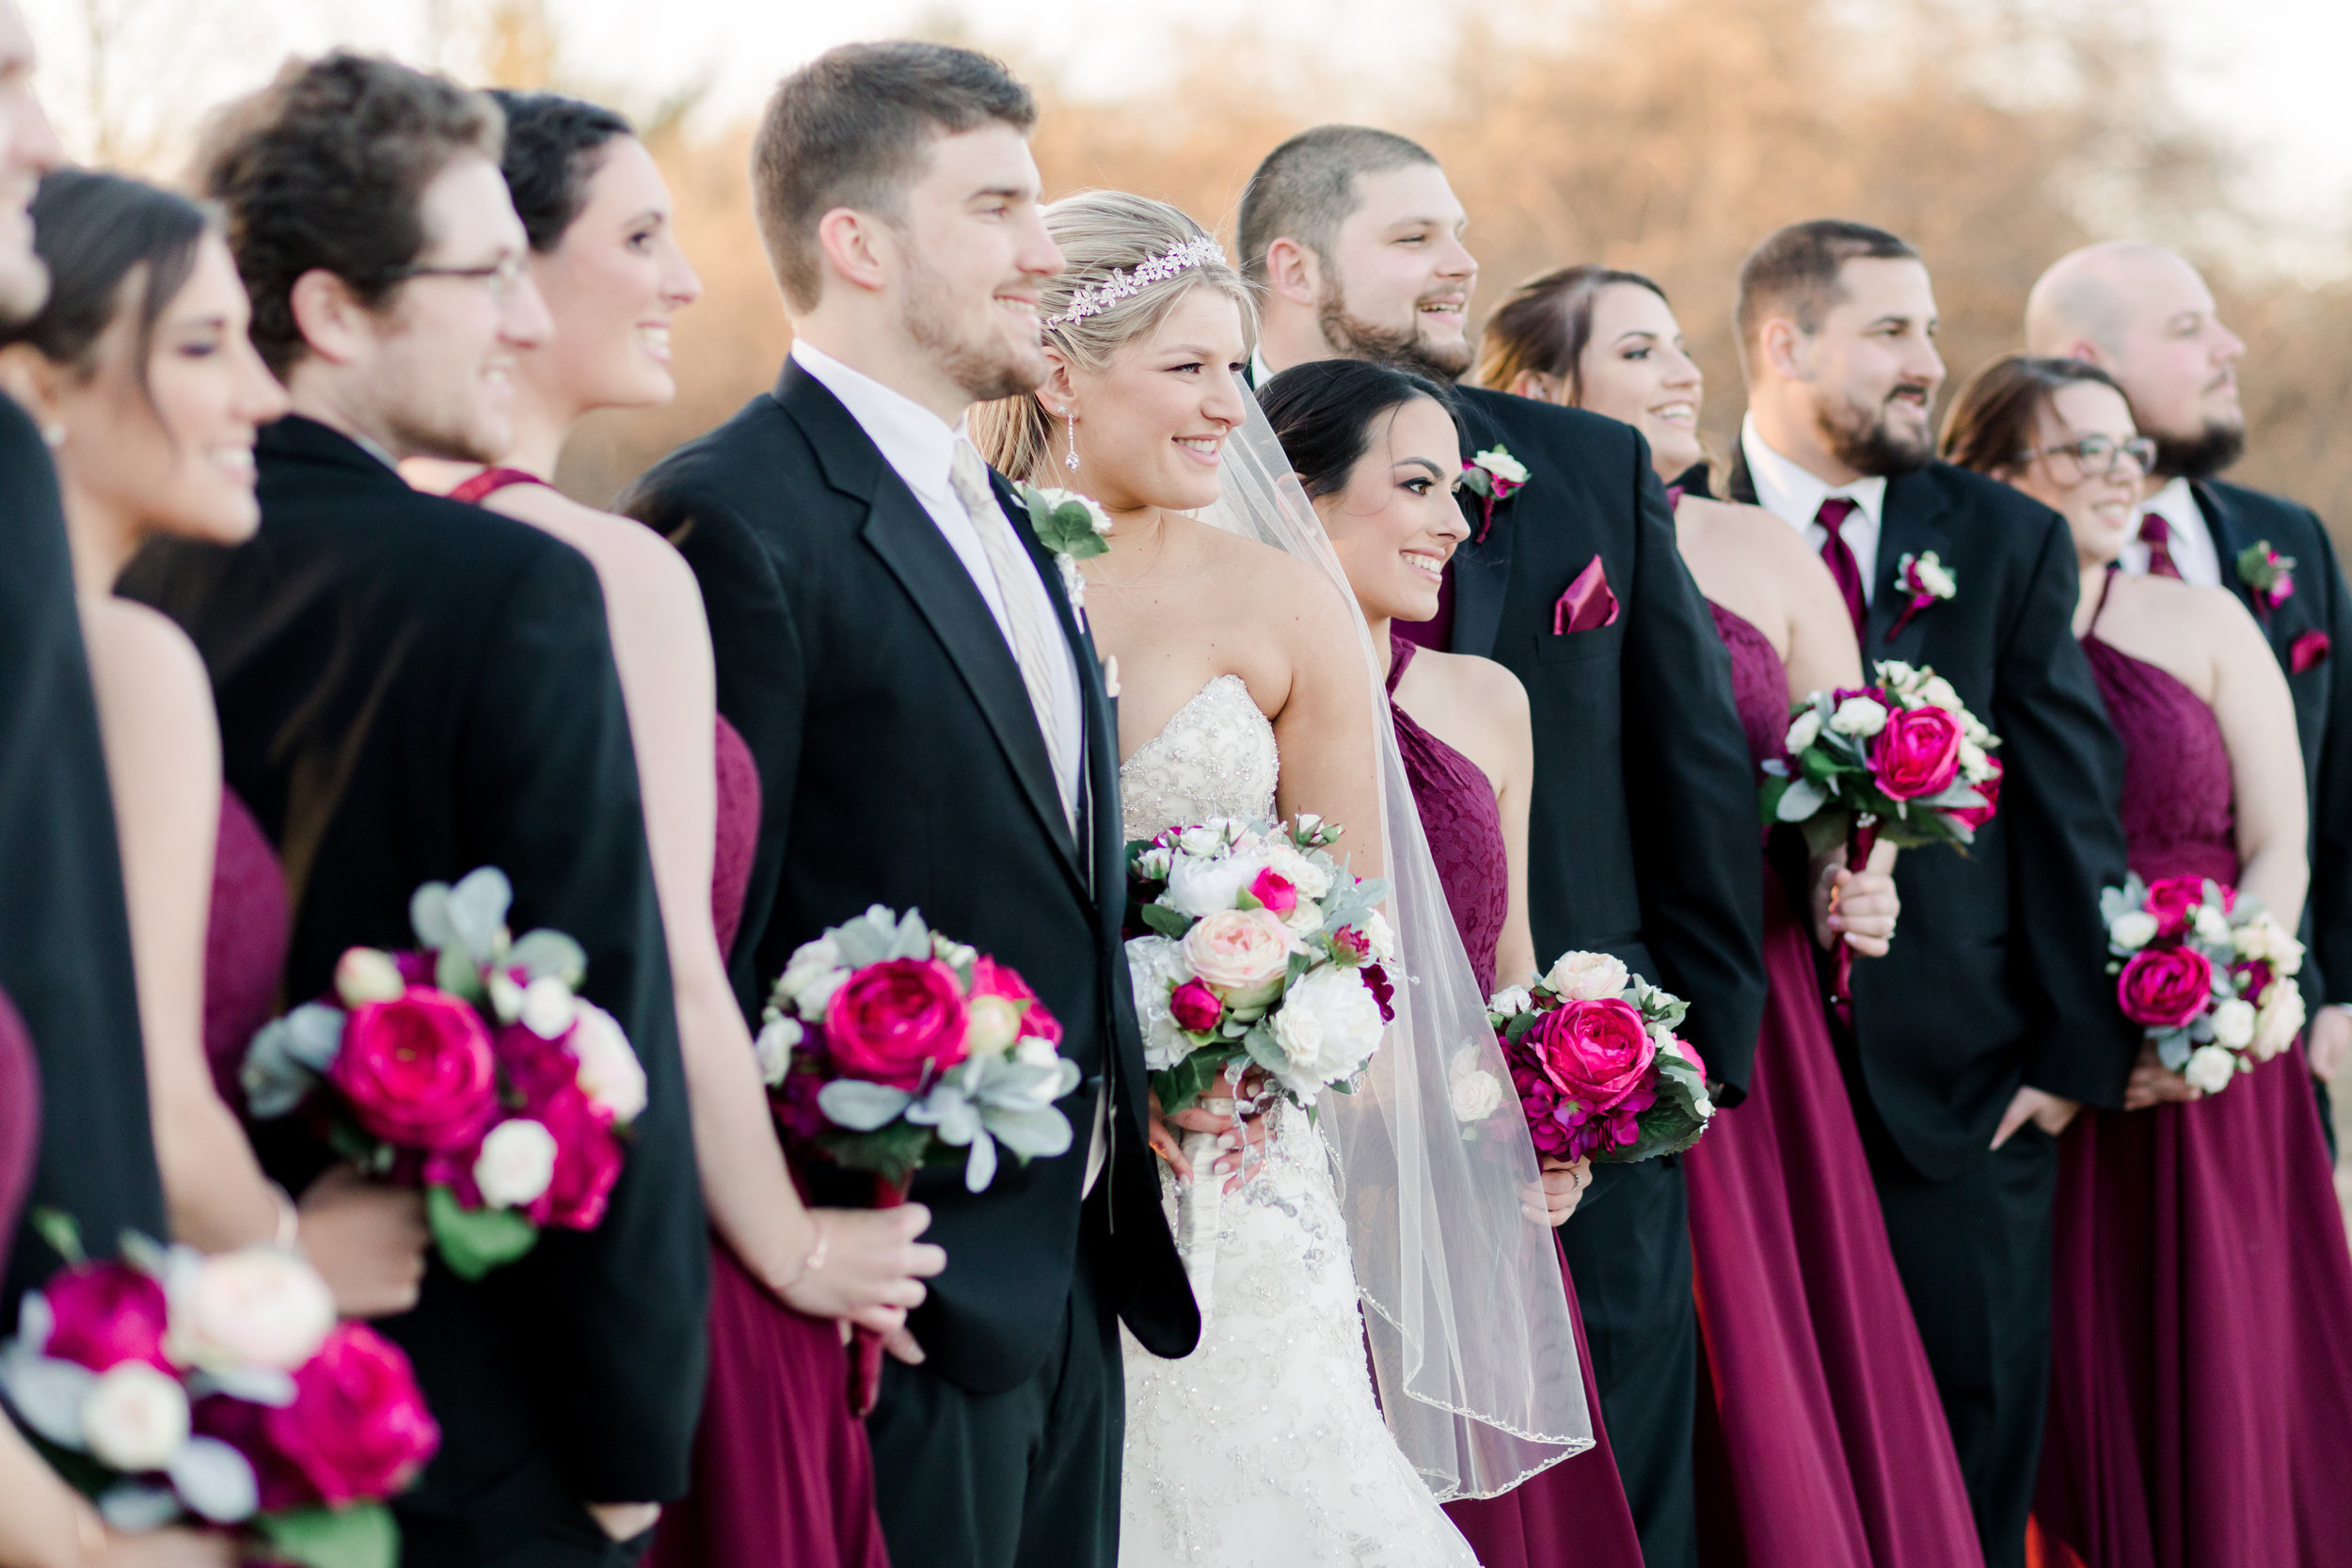 2. Family or bridal party running late -